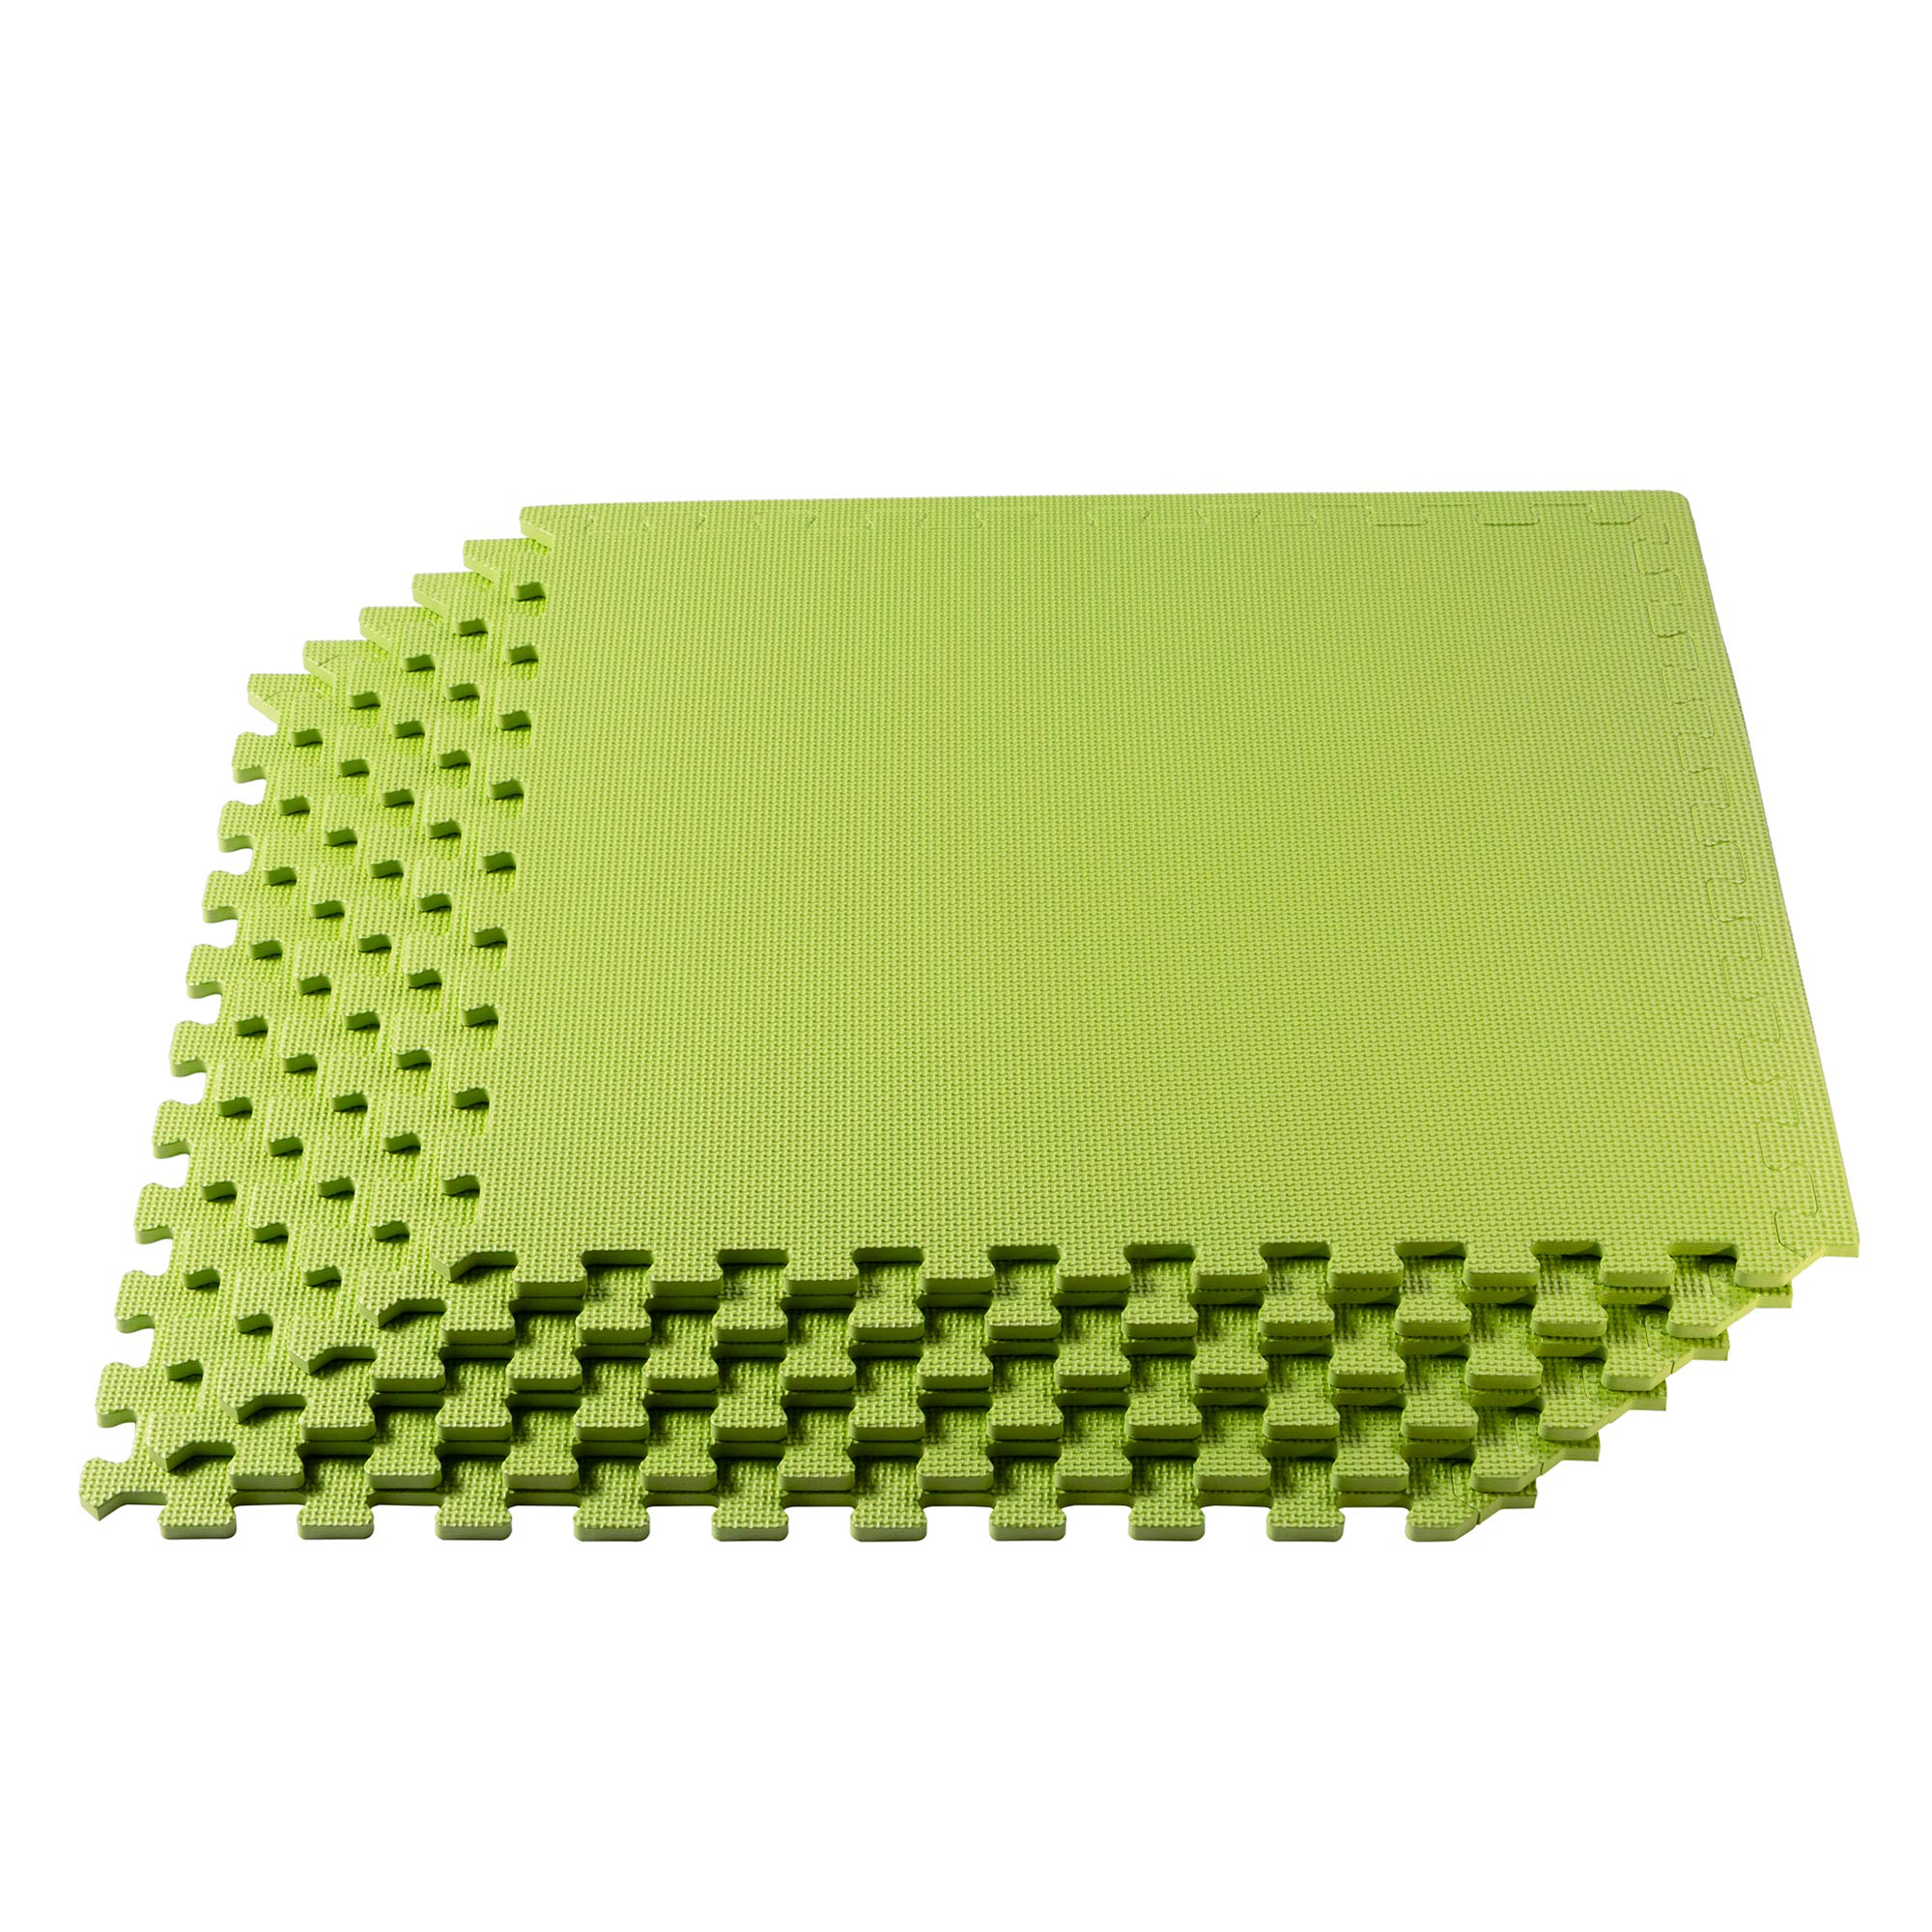 We Sell Mats Multipurpose Exercise Floor Mat with EVA Foam, Interlocking Tiles, Anti-Fatigue, for Home or Gym, 16 Square Feet (4 Tiles), 24 x 24 x 3/8 Inches, Lime Green